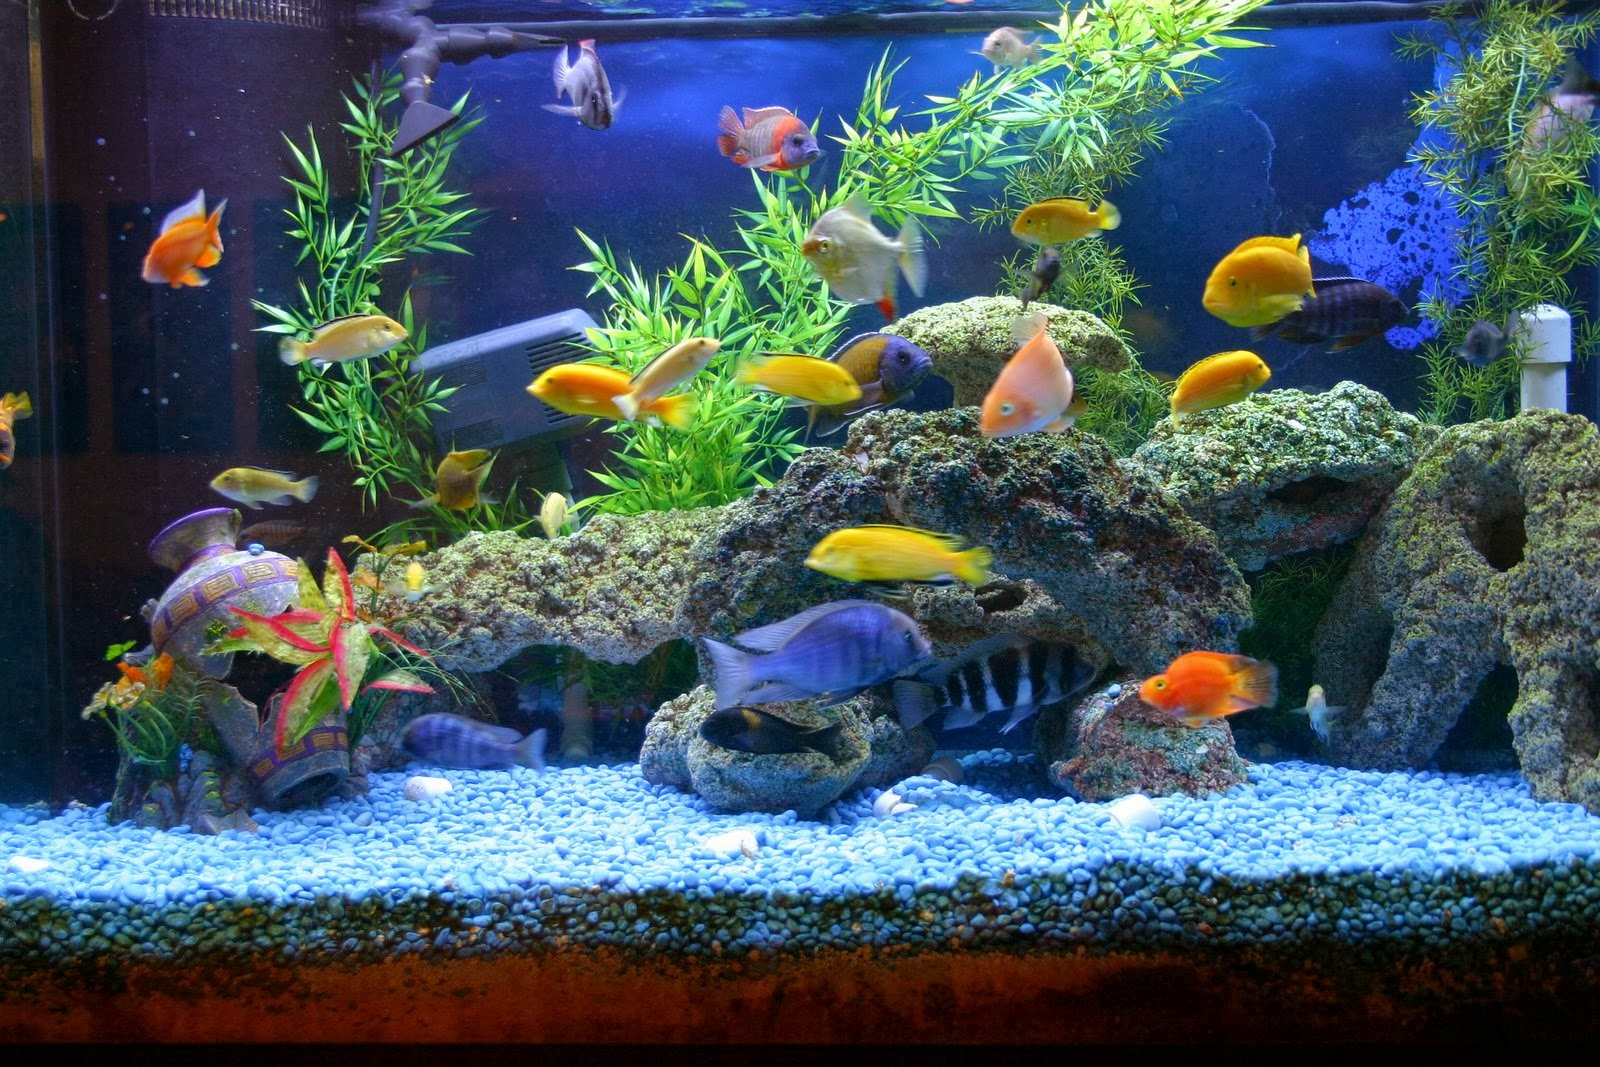 How To Clean A Dirty Aquarium Earnest Foods For My Soul